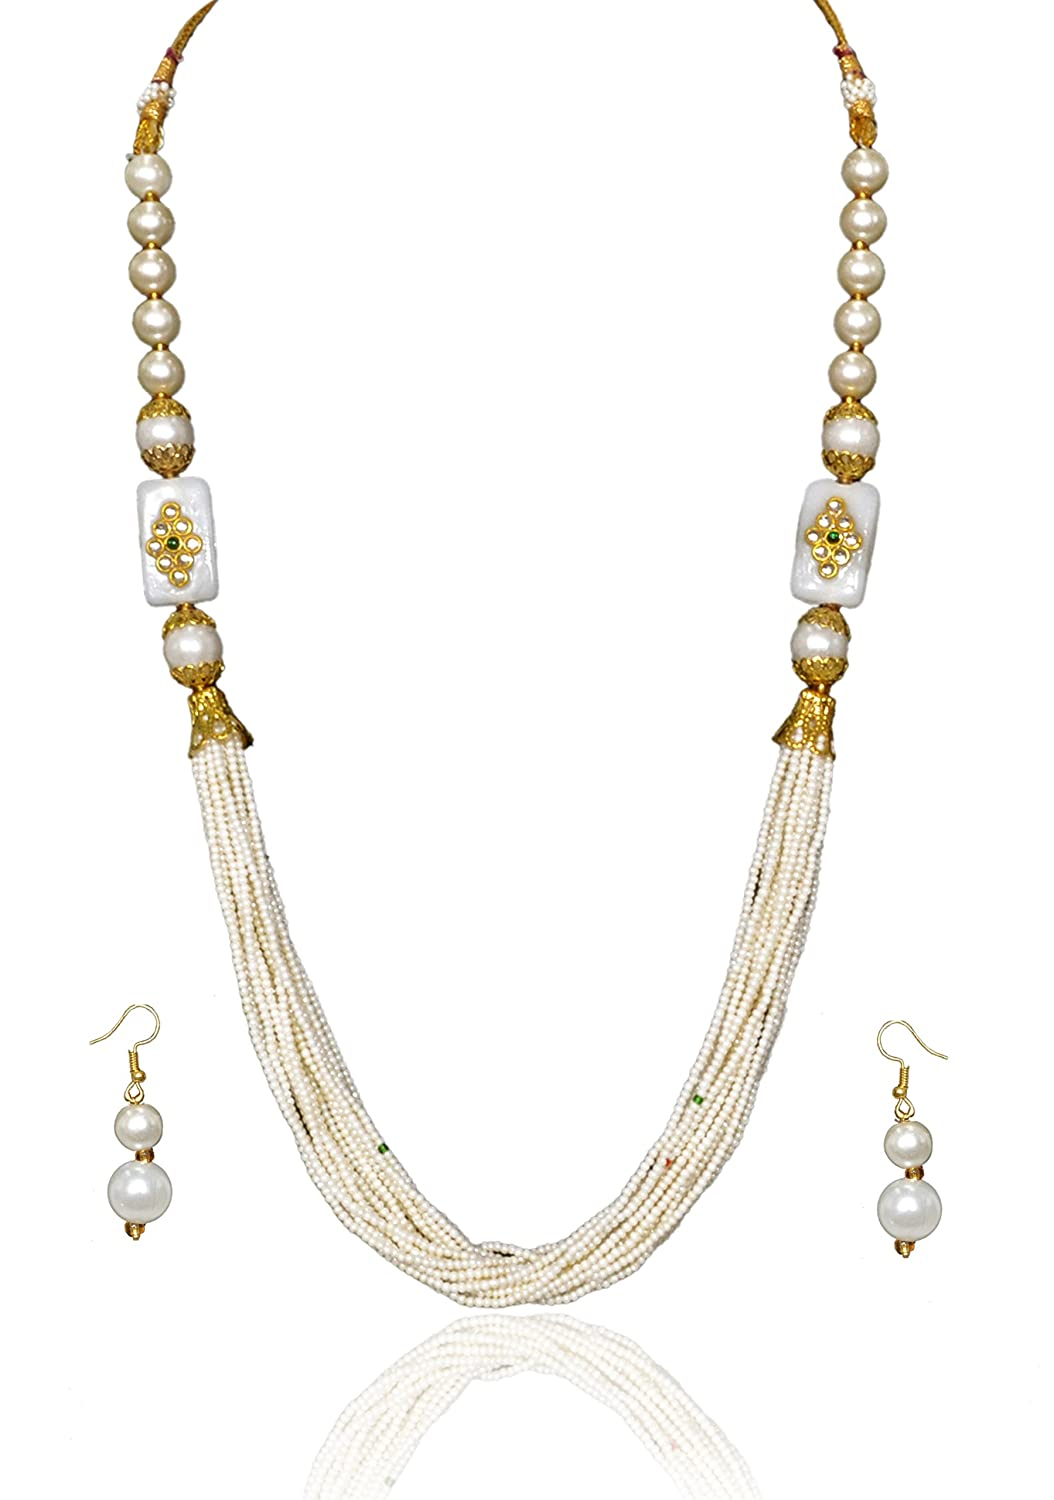 Sansar India Multilayer Rajasthani Indian Jewelry Necklace Earrings Set for Girls and Women 963